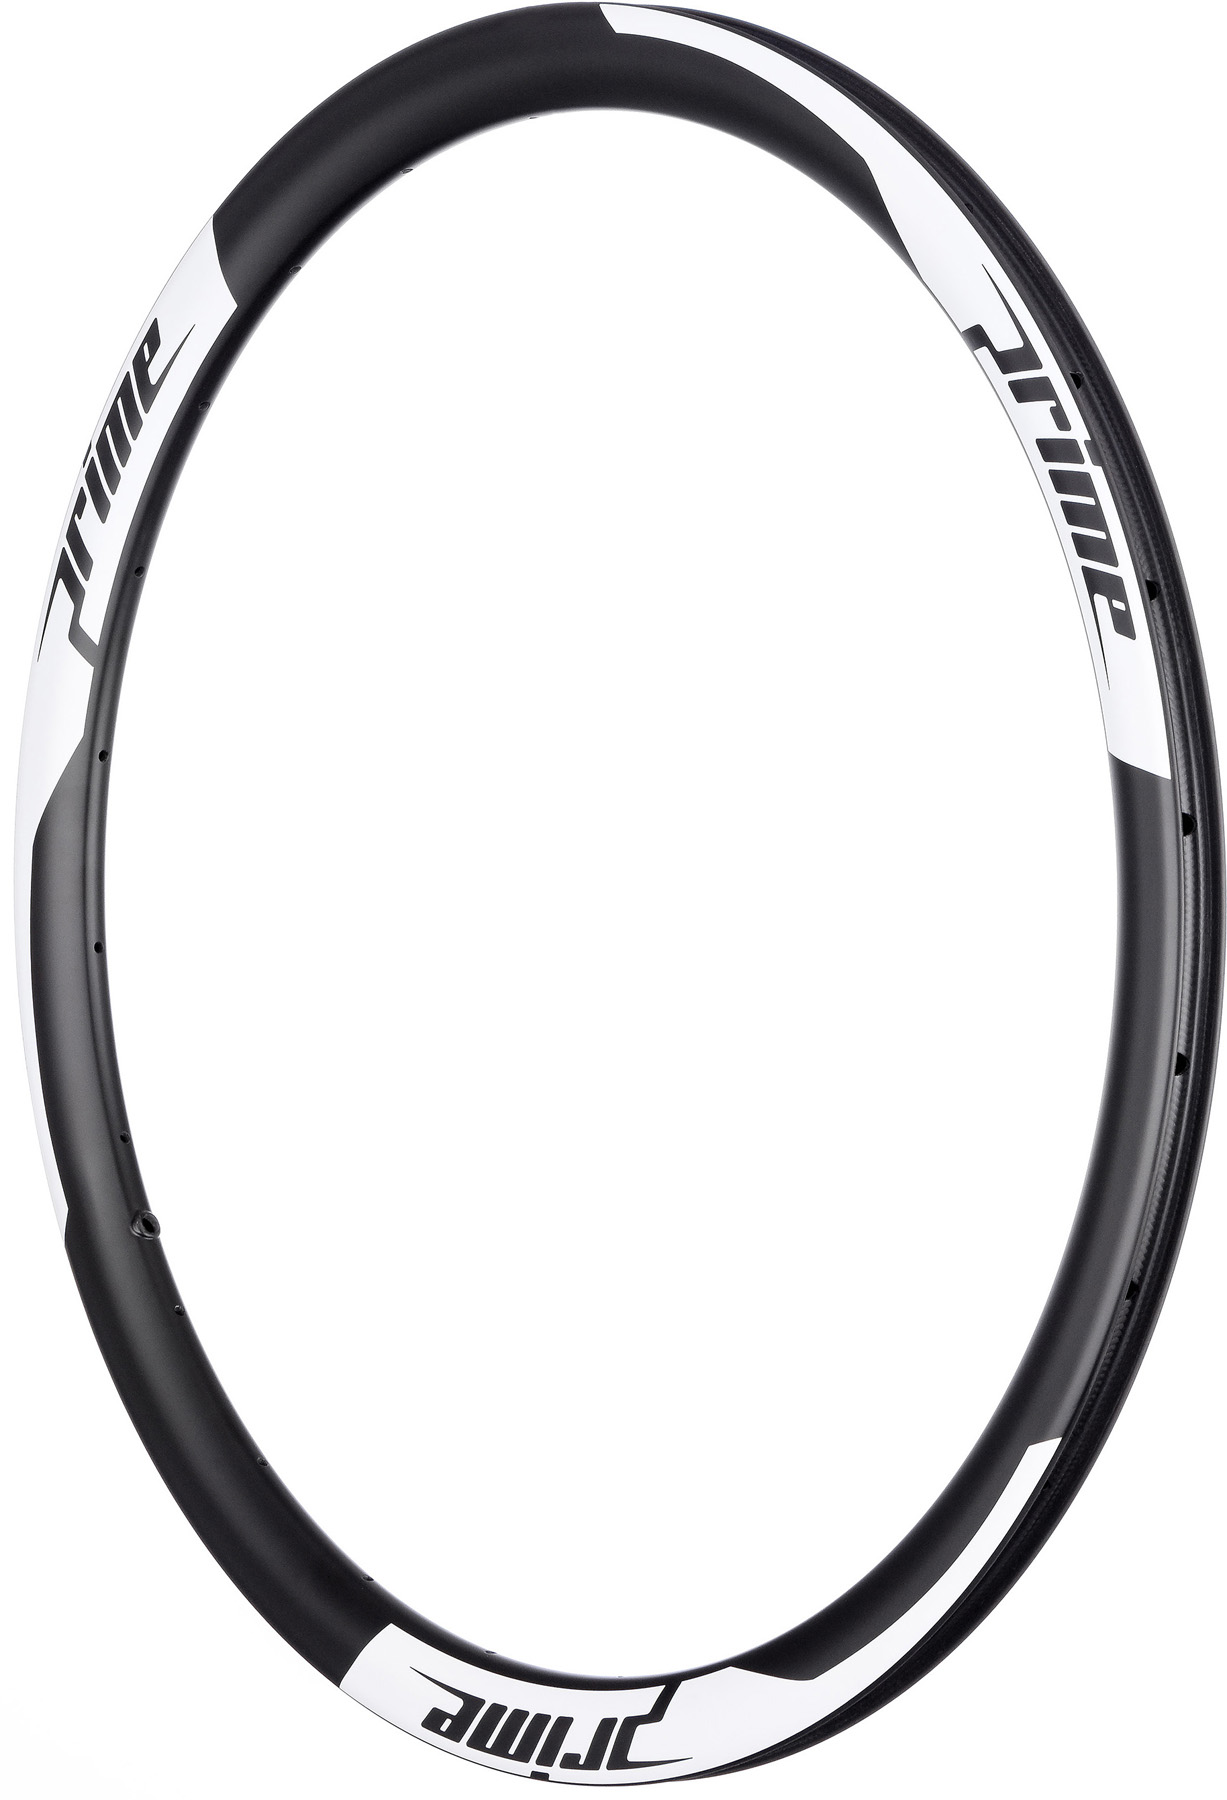 Prime CC-38 Clincher Disc Road Rim | Wheelset